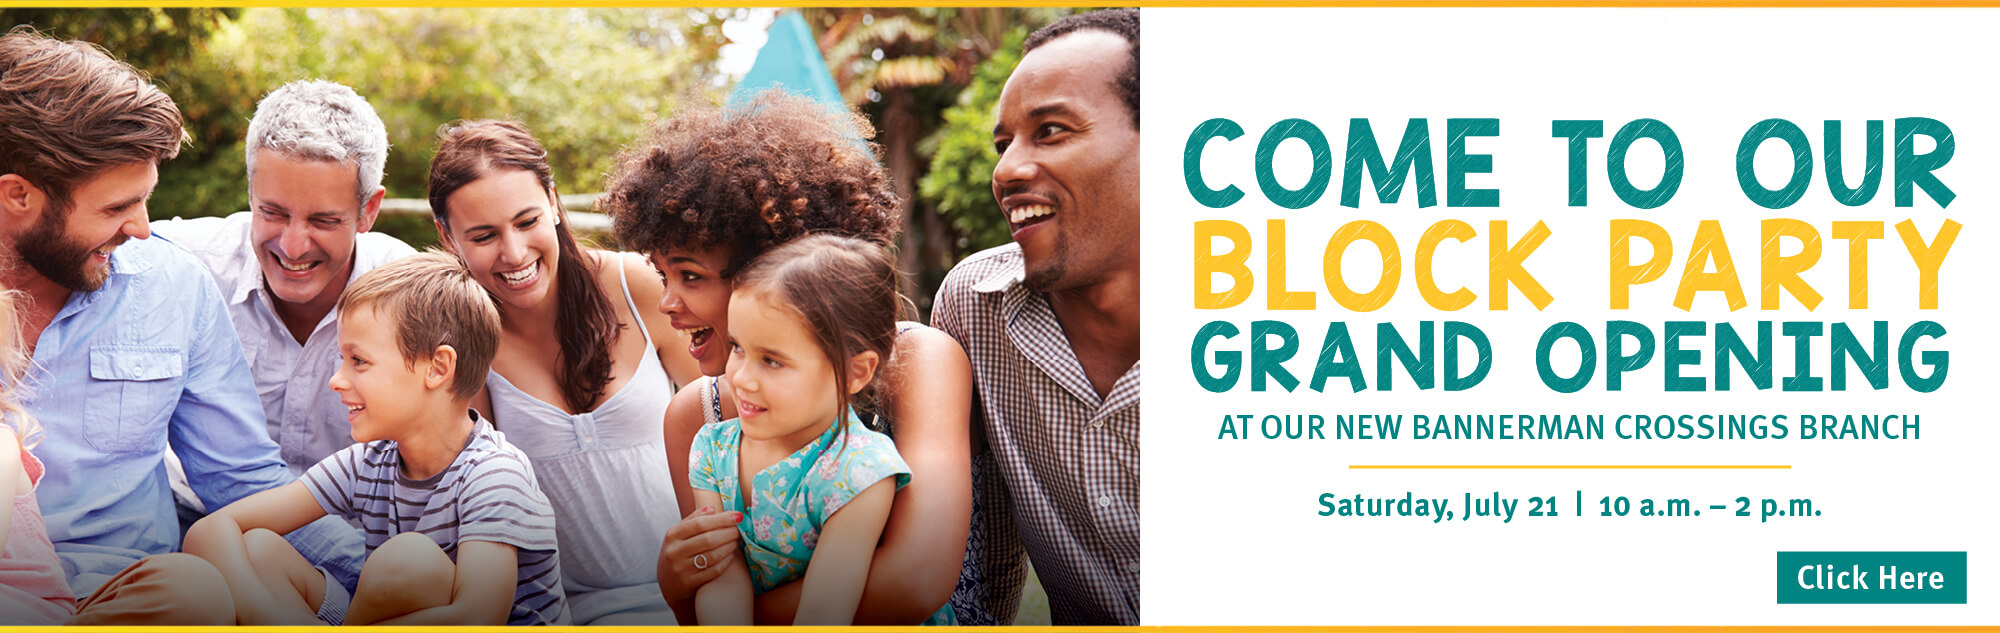 Come to our Bannerman Crossings branch grand opening celebration on July 21. Plus, enter for a chance to win a gift basket valued at $1,000. Click for details. Image